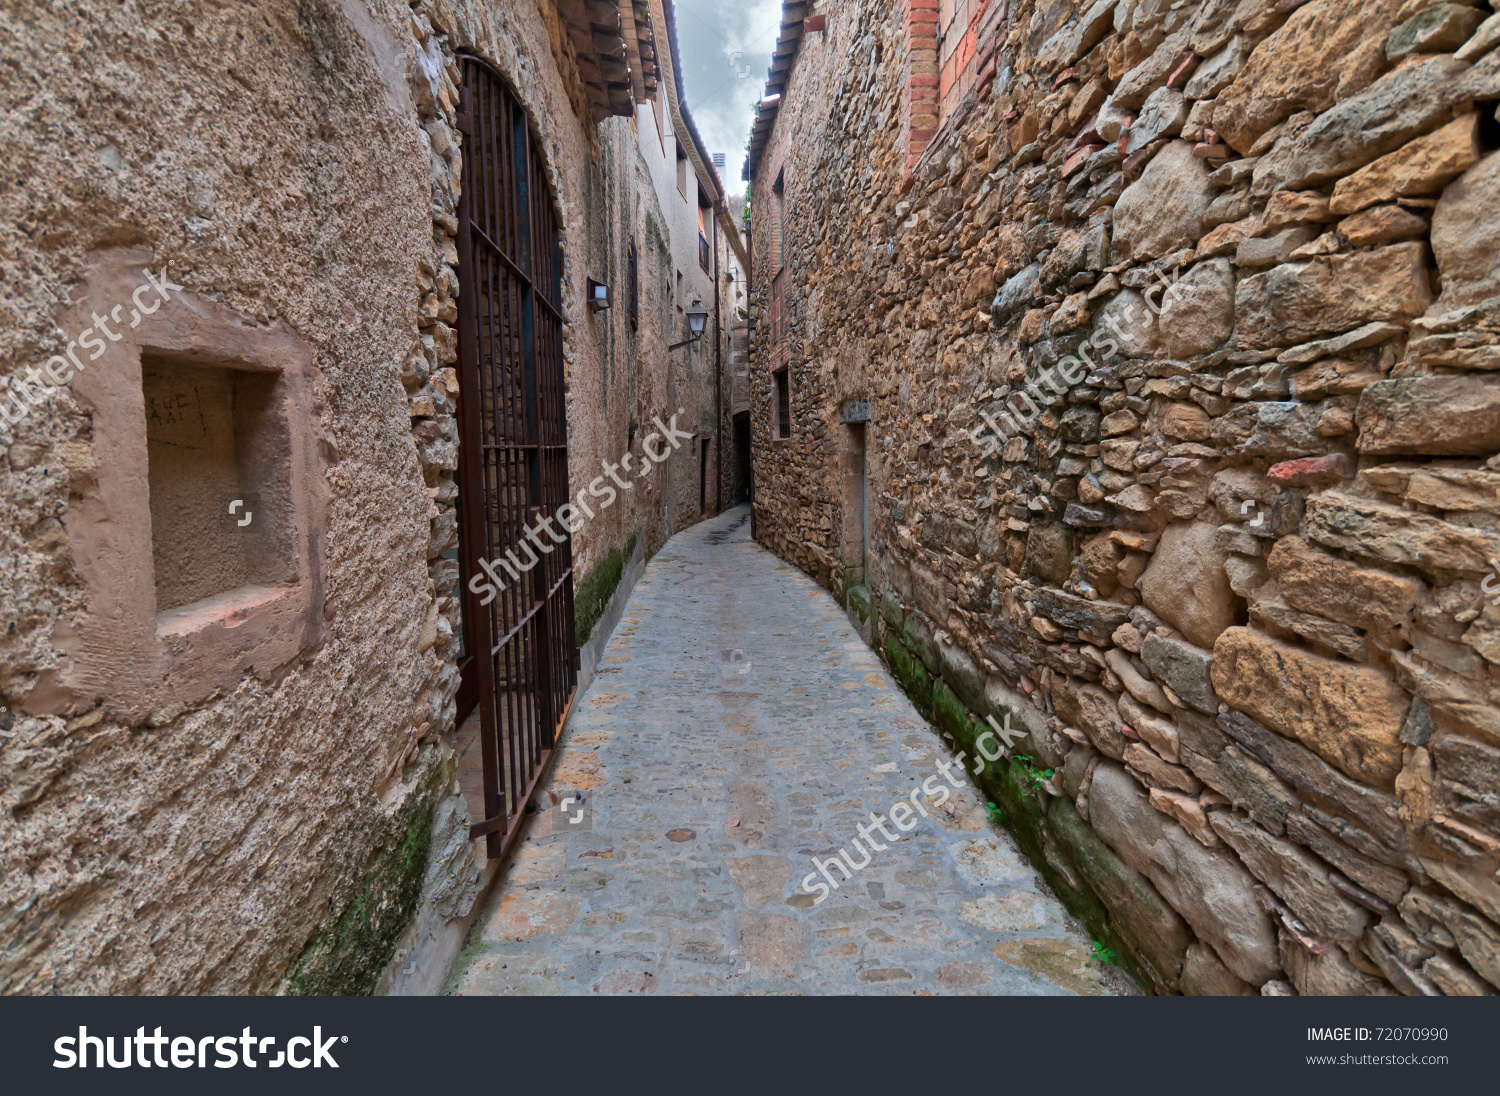 Narrow Passageway Between Two Walls In Peratallada, Spain Stock.